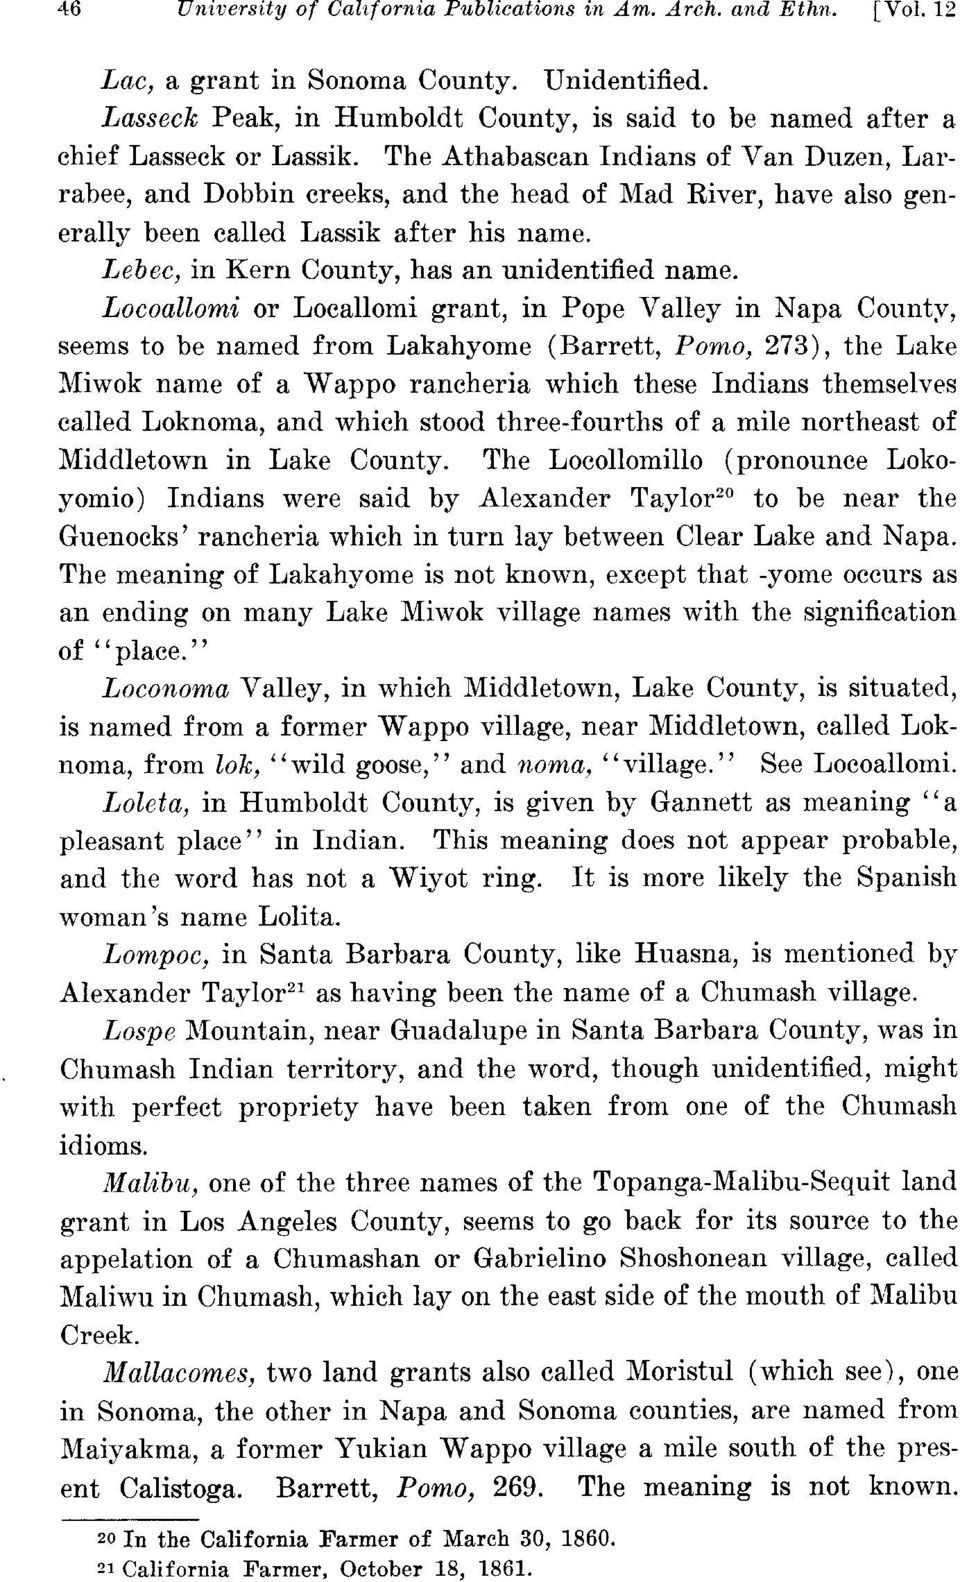 The Athabascan Indians of Van Duzen, Larrabee, and Dobbin creeks, and the head of Mad River, have also generally been called Lassik after his name. Lebec, in Kern County, has an unidentified name.